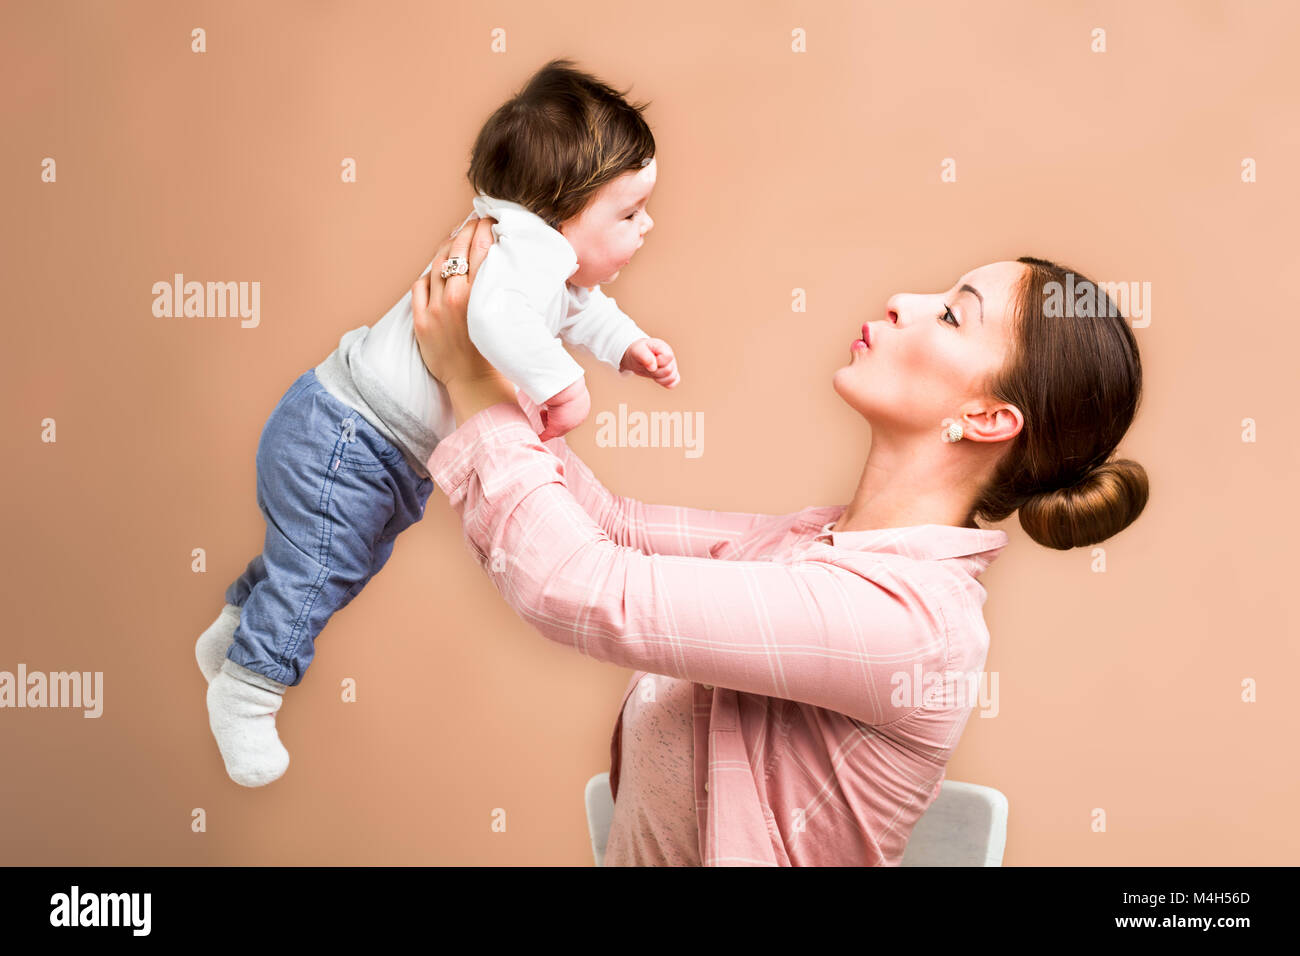 mother and six months old baby girl - Stock Image